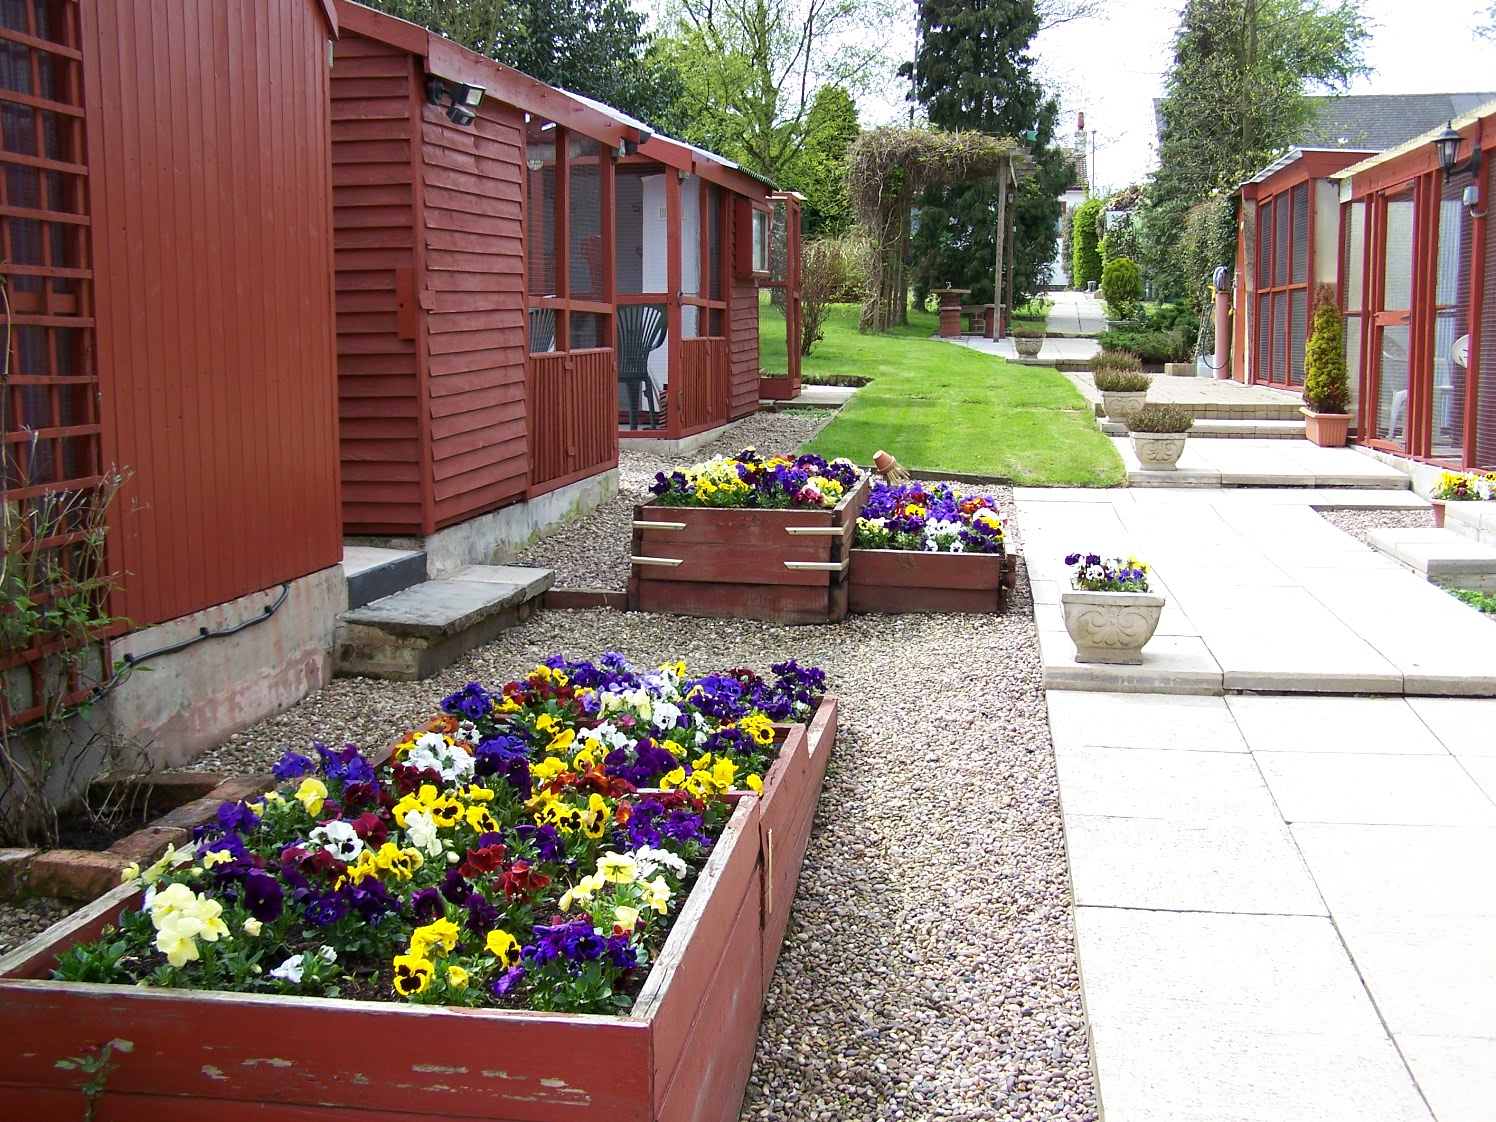 Cattery Flower Beds